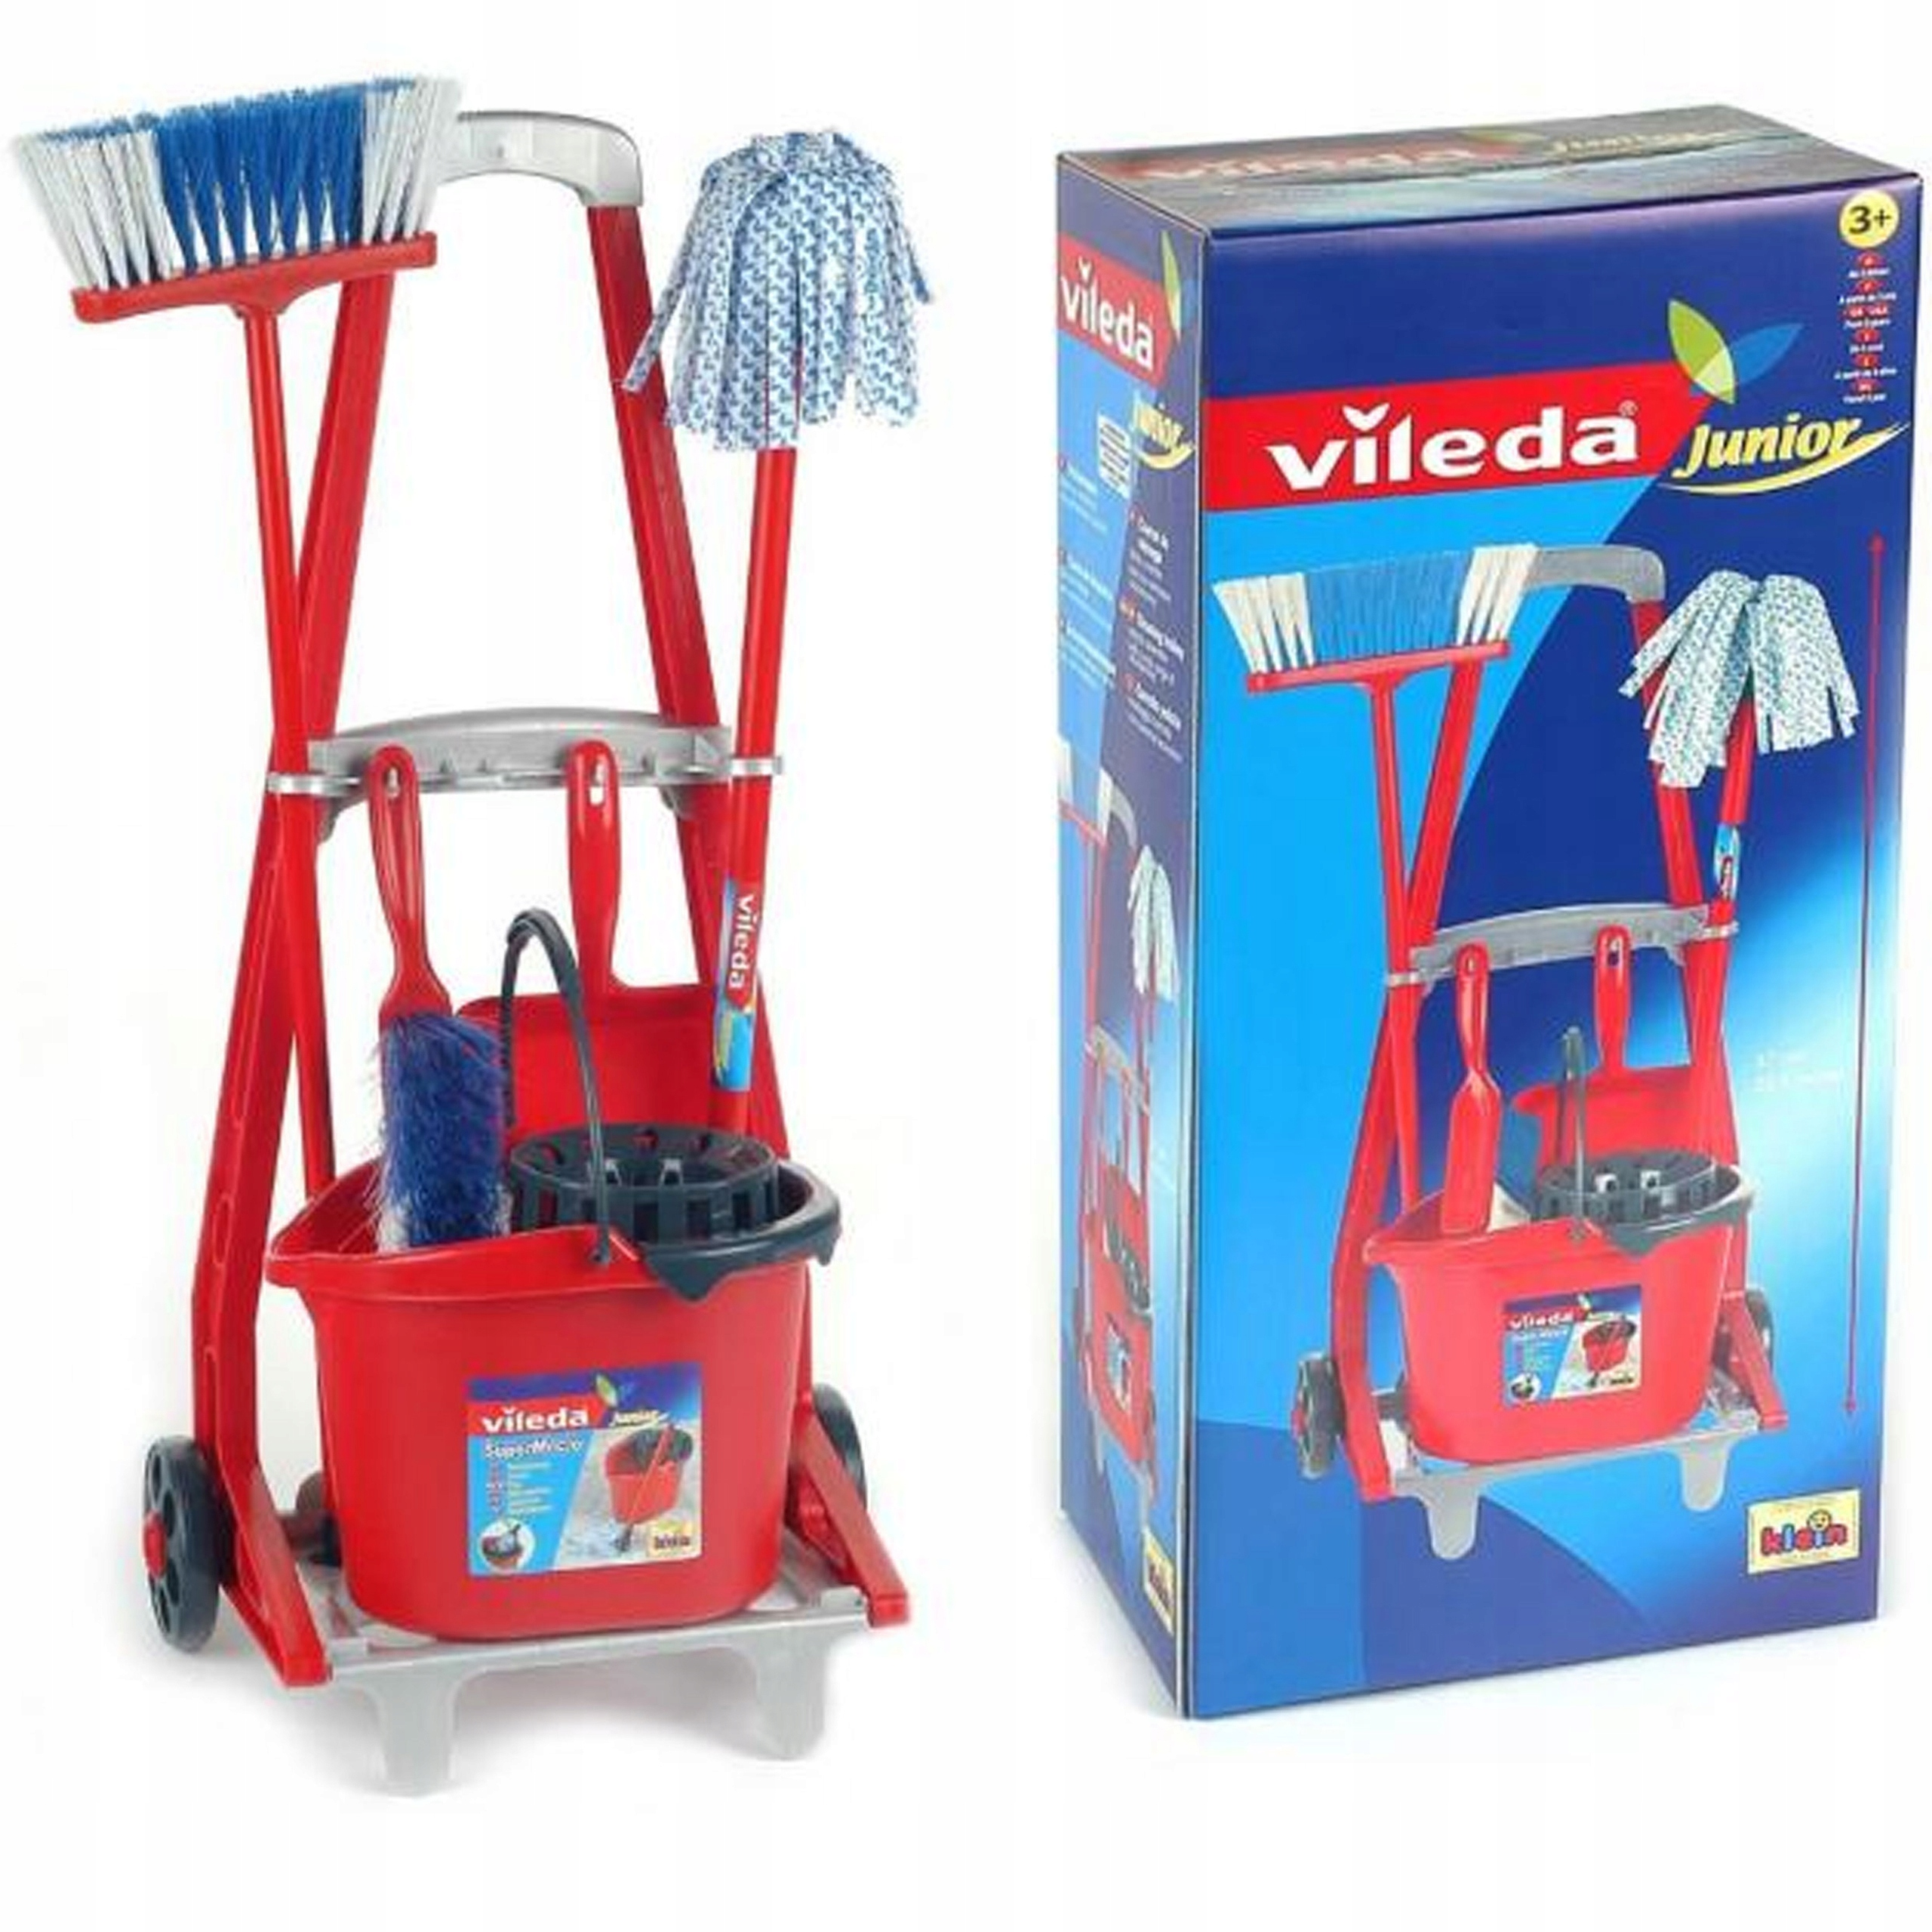 KLEIN VILEDA TOLLEY CLEANING SET + PAIL